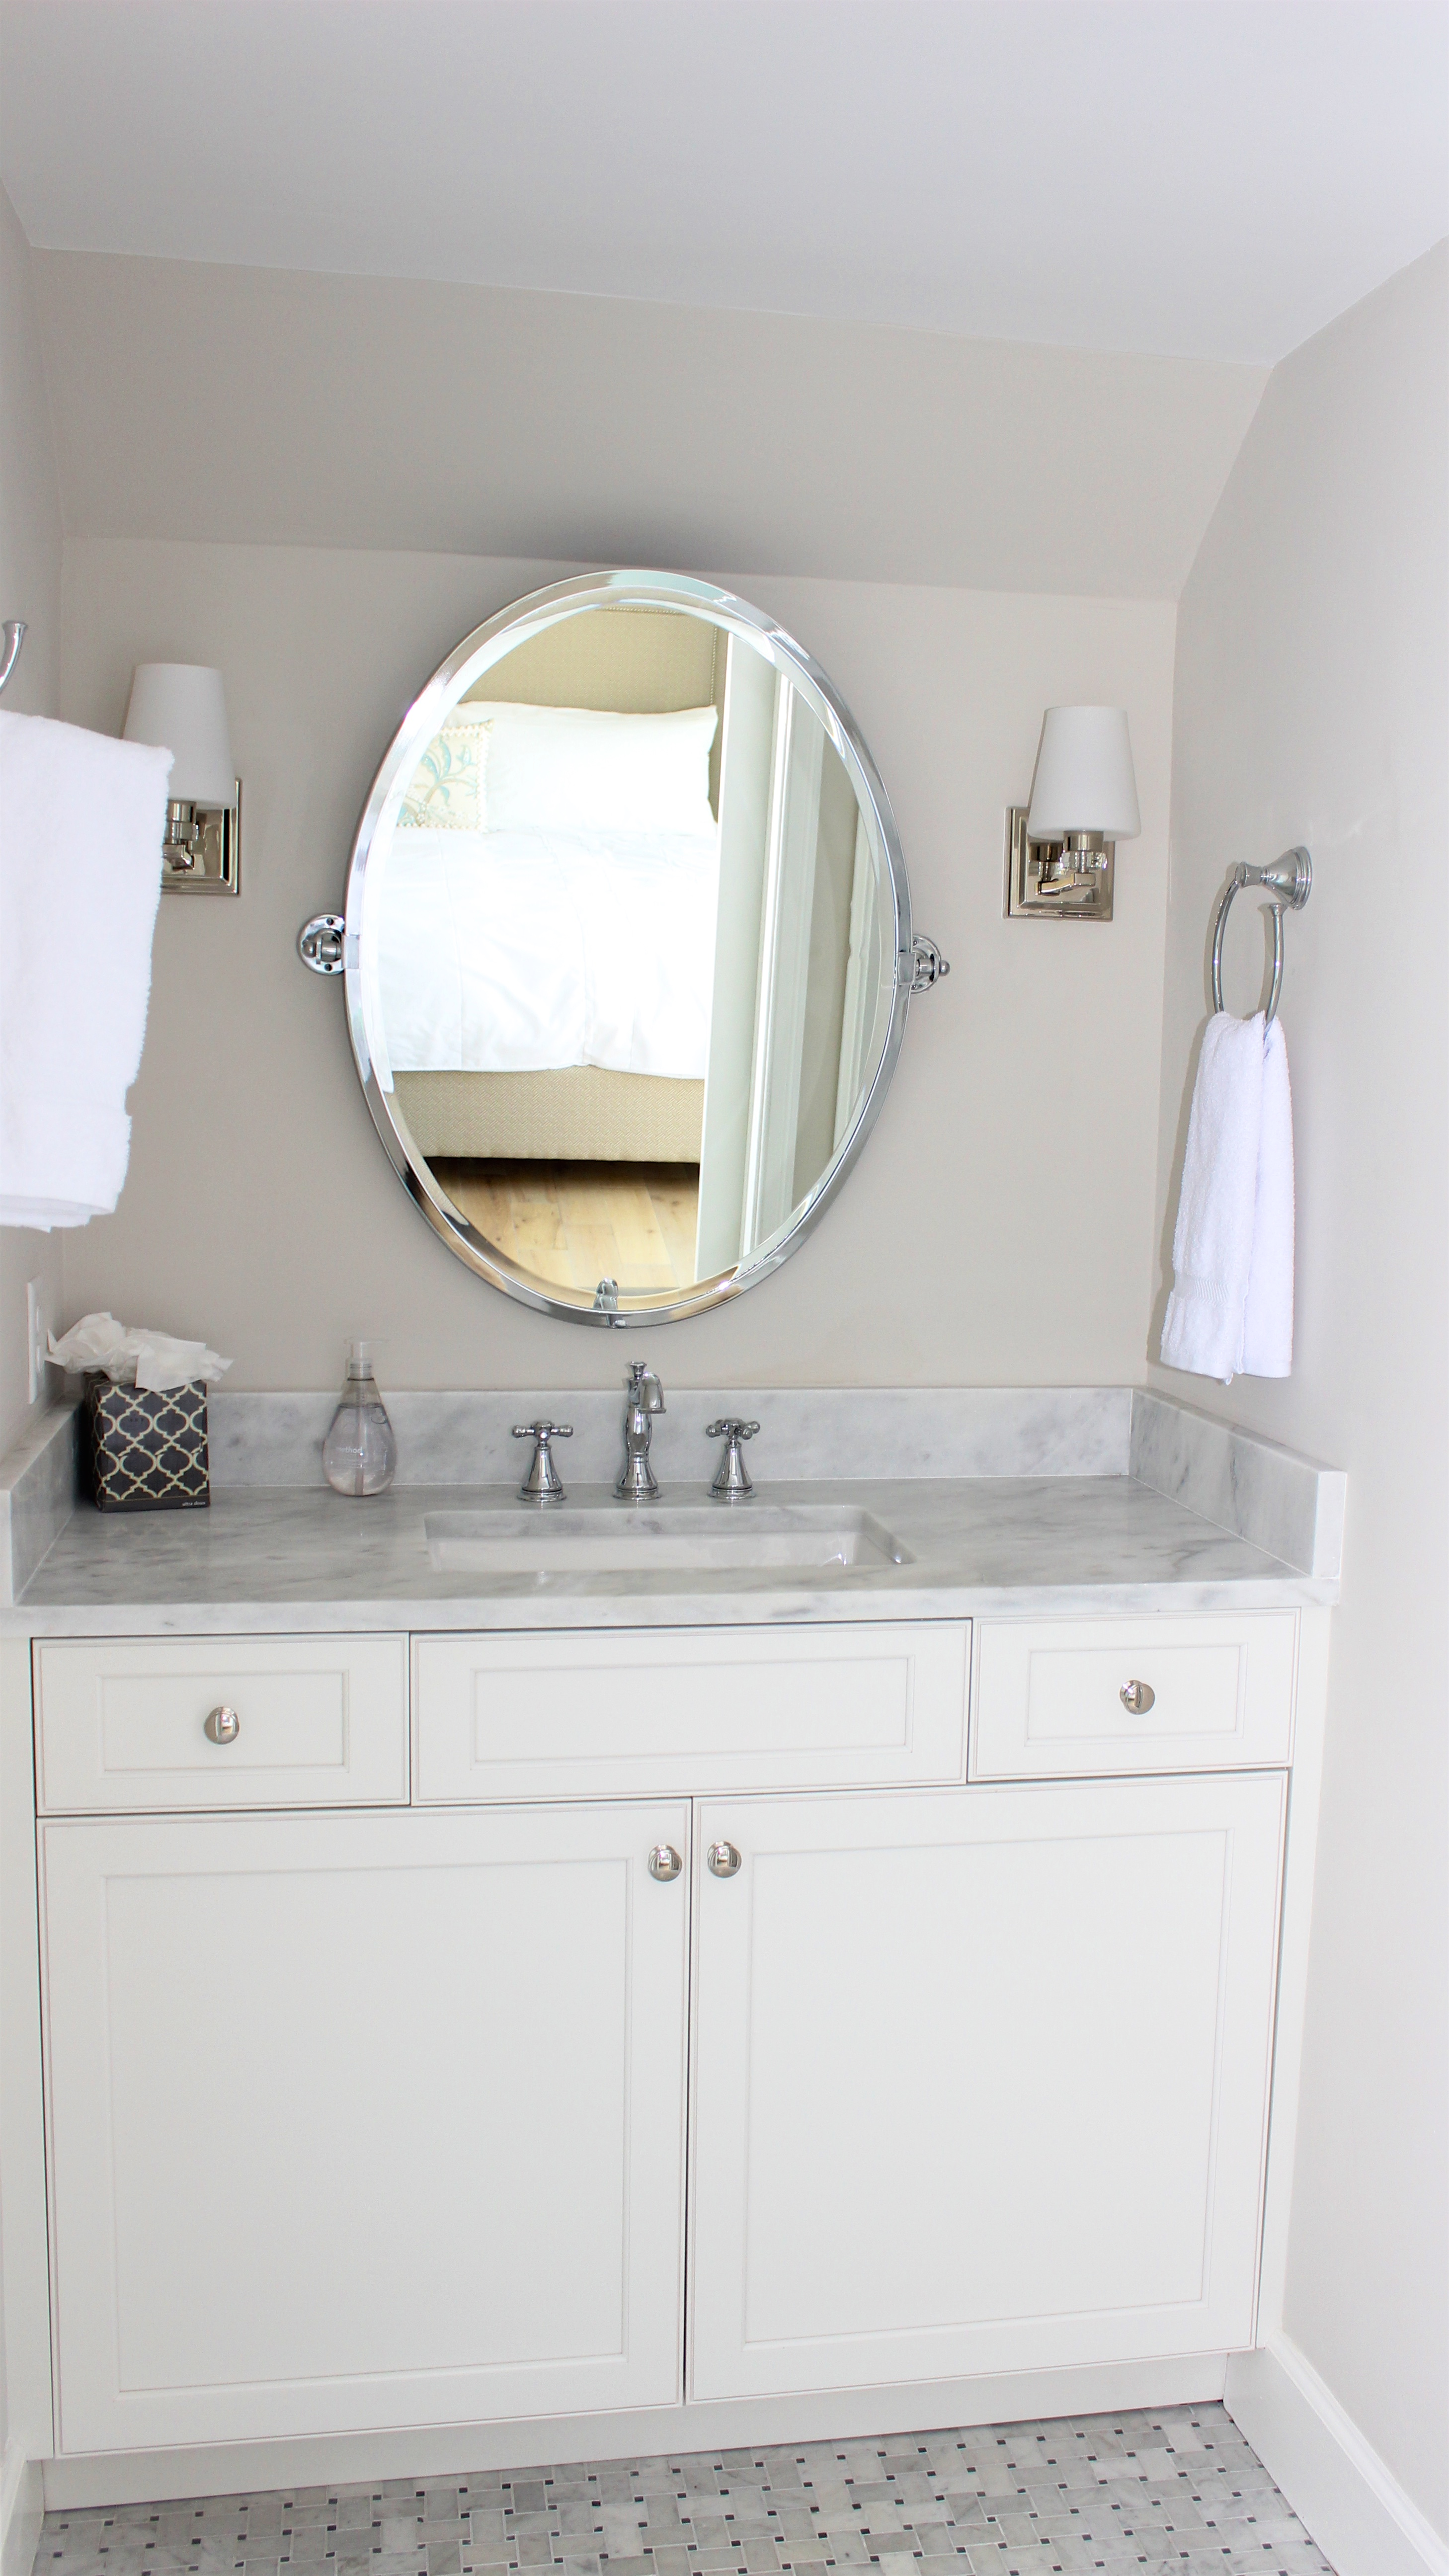 Great tile and a granite topped vanity are highlights.